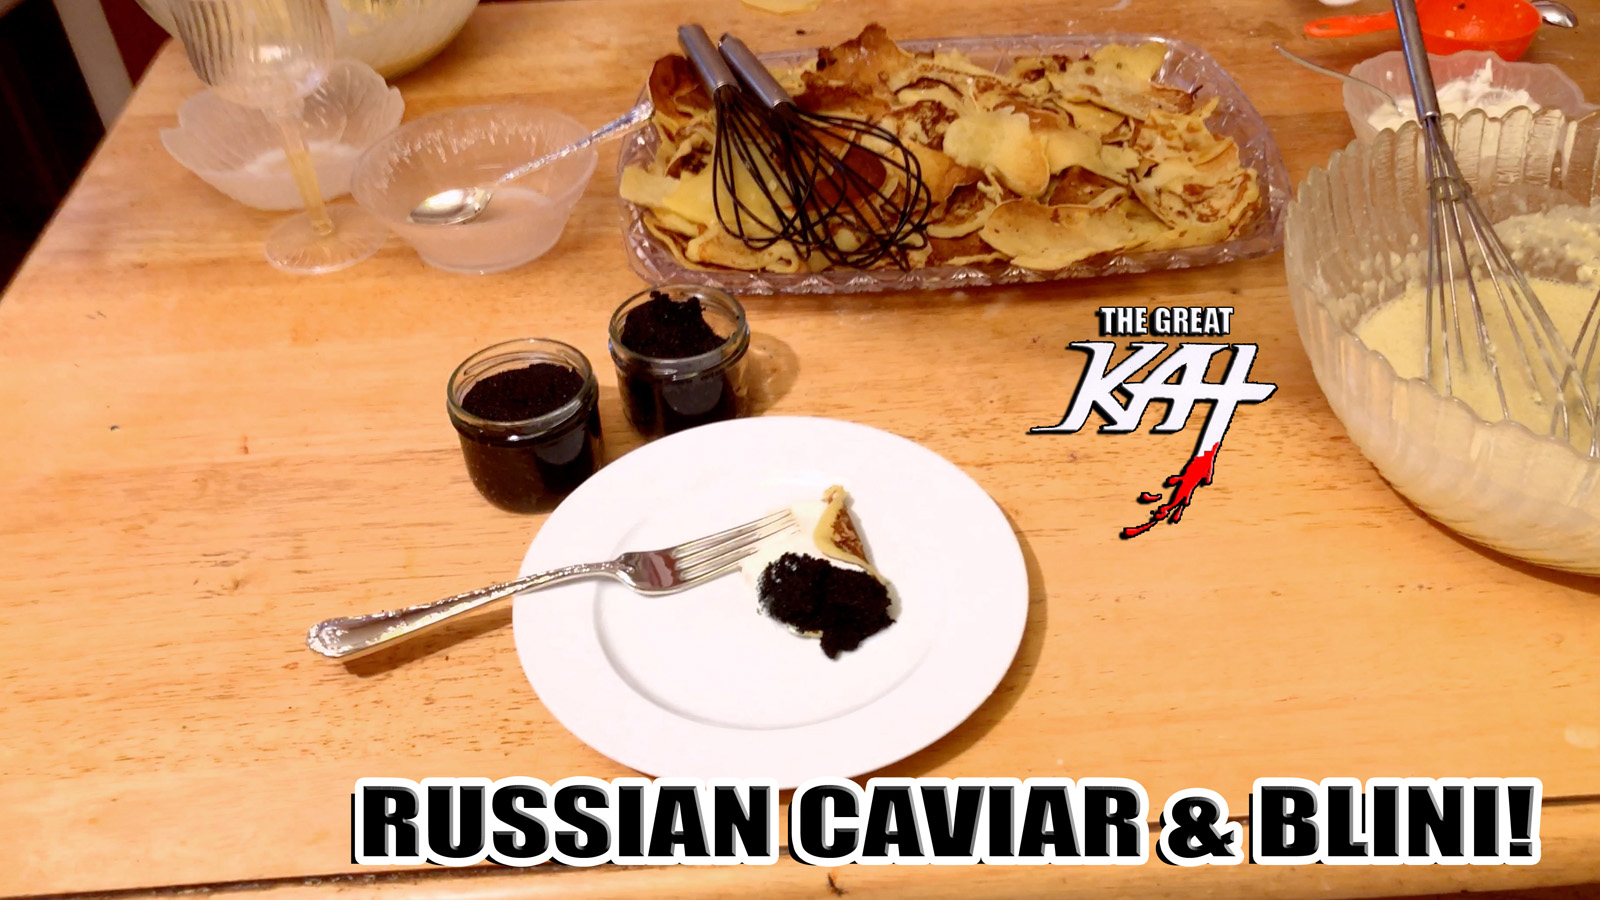 """RUSSIAN CAVIAR & BLINI! From """"CHEF GREAT KAT COOKS RUSSIAN CAVIAR AND BLINI WITH RIMSKY-KORSAKOV"""" VIDEO!!"""